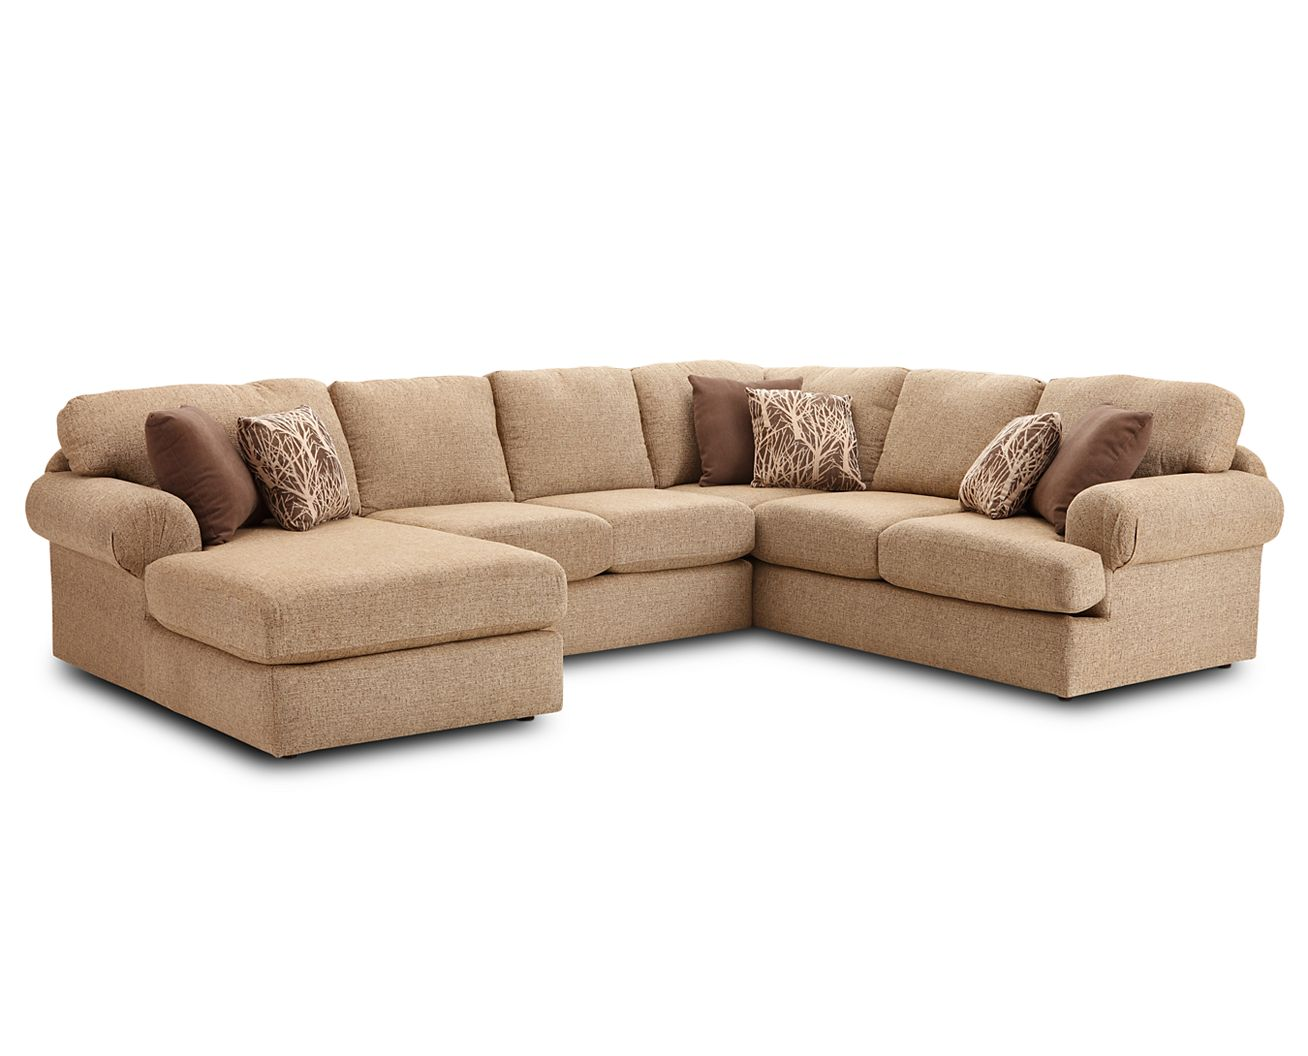 Southport Bedroom Furniture Southport 3 Pc Sectional Furniture Row